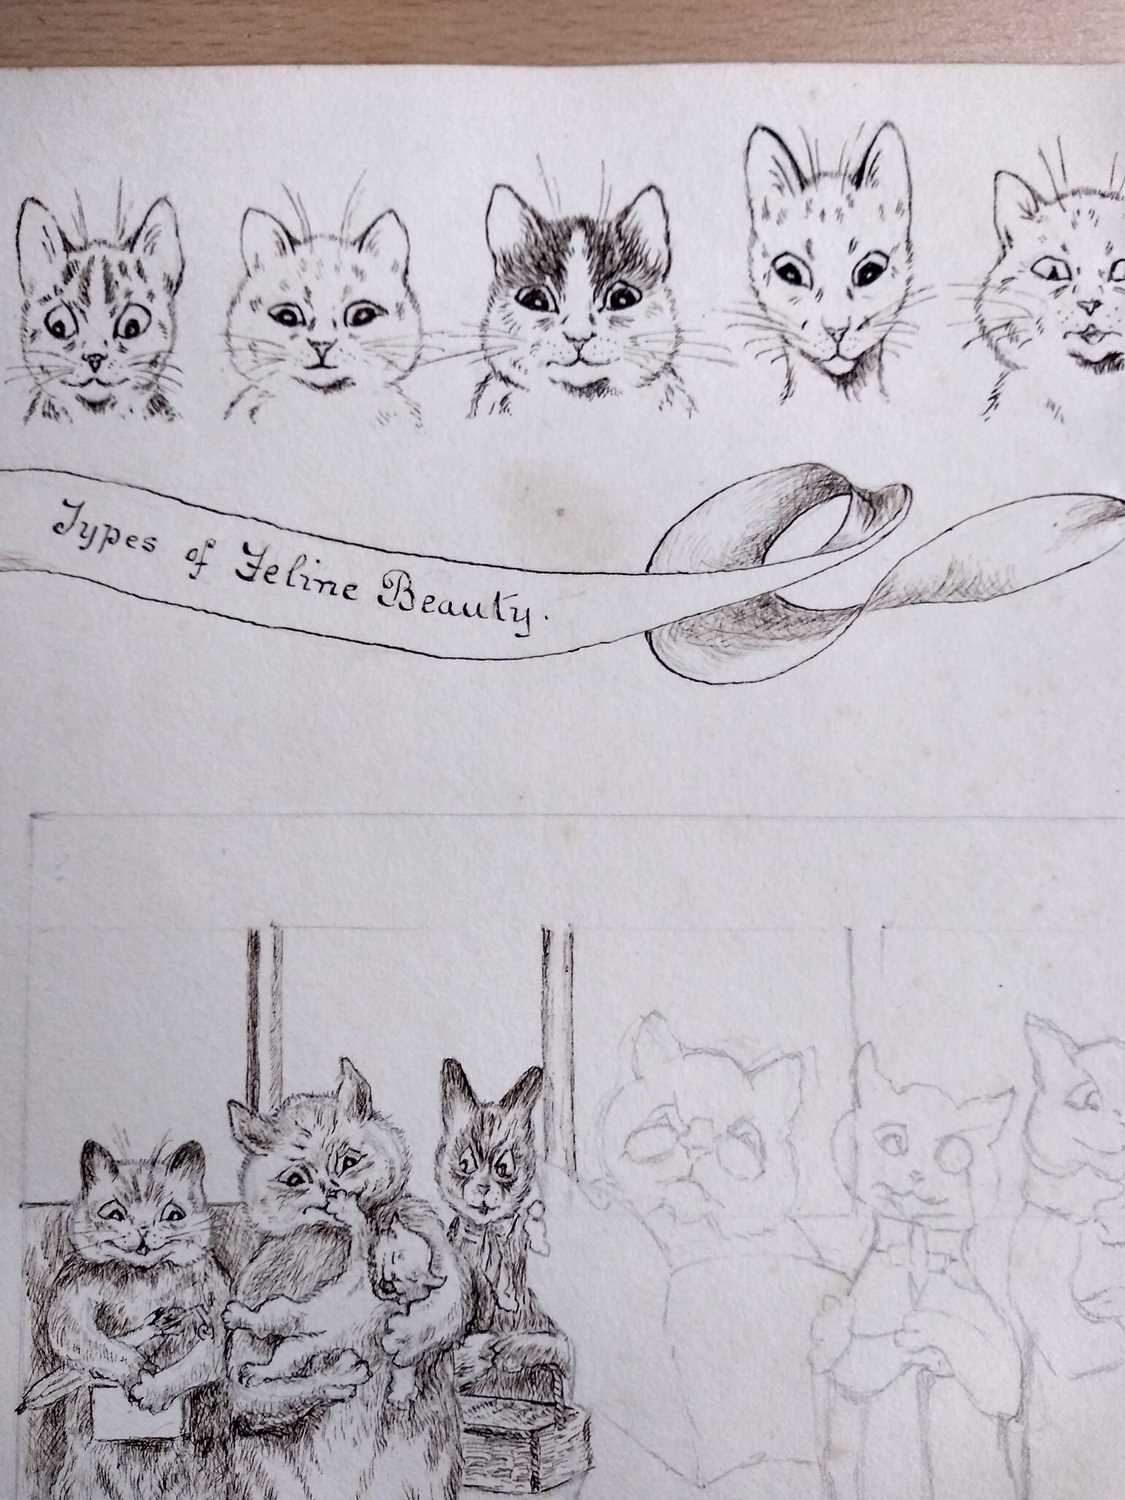 Attributed to Louis Wain (1860-1939) - Image 4 of 8